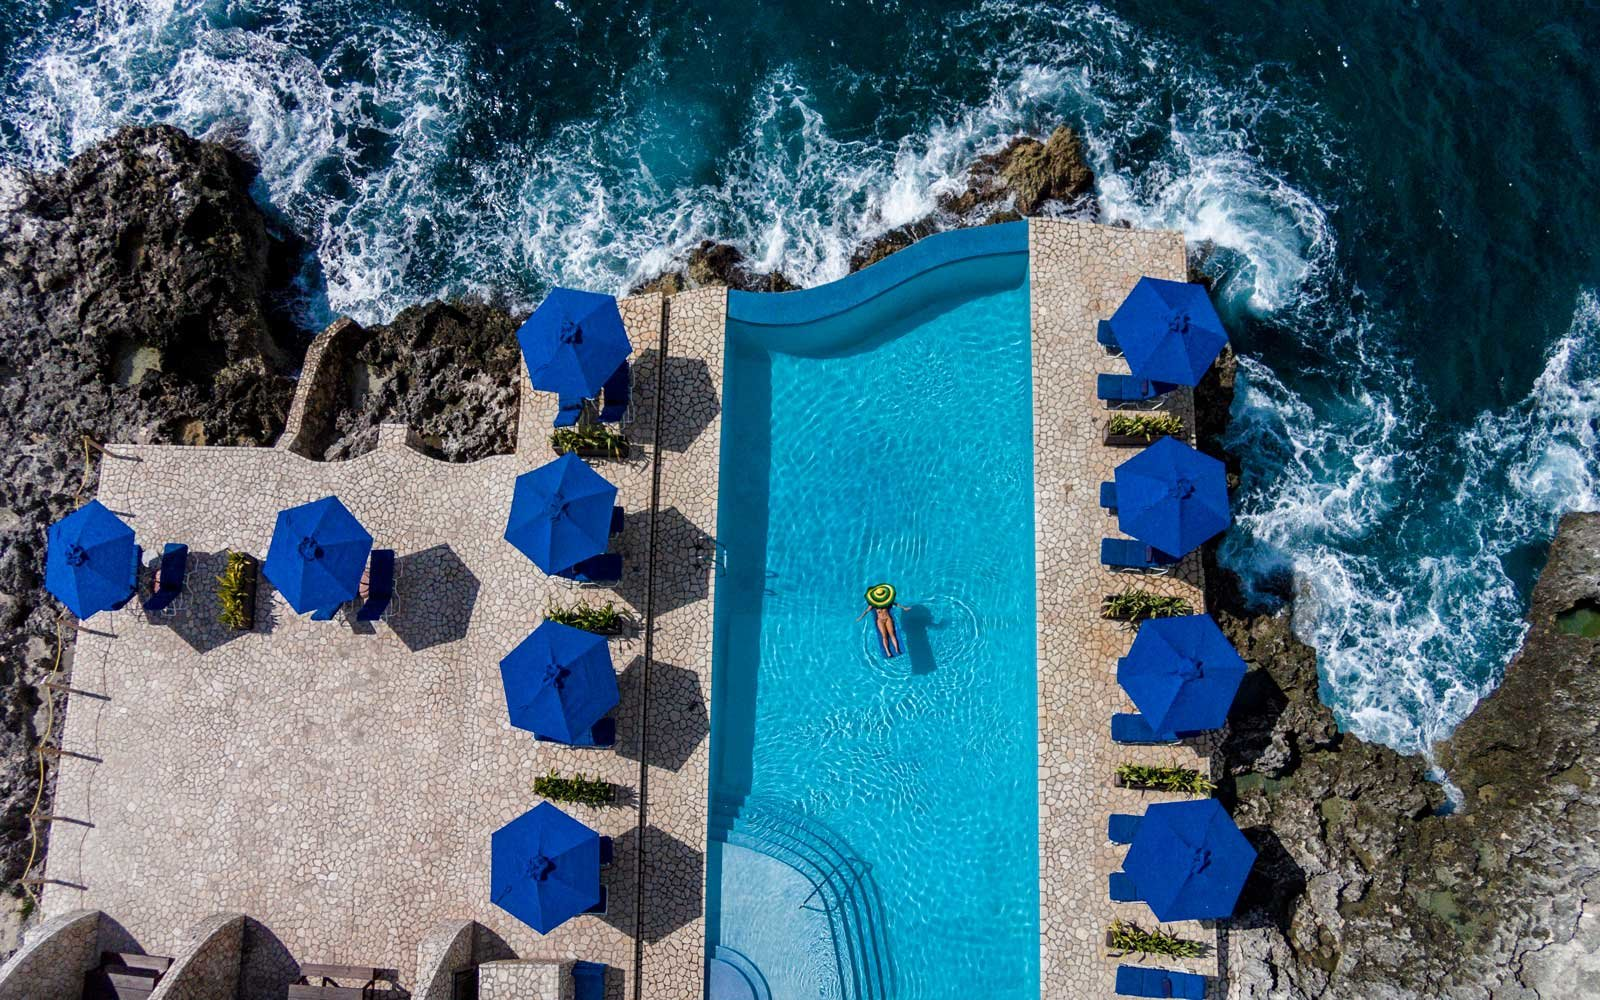 Bird's eye view of the pool at Jamaica's Rockhouse hotel